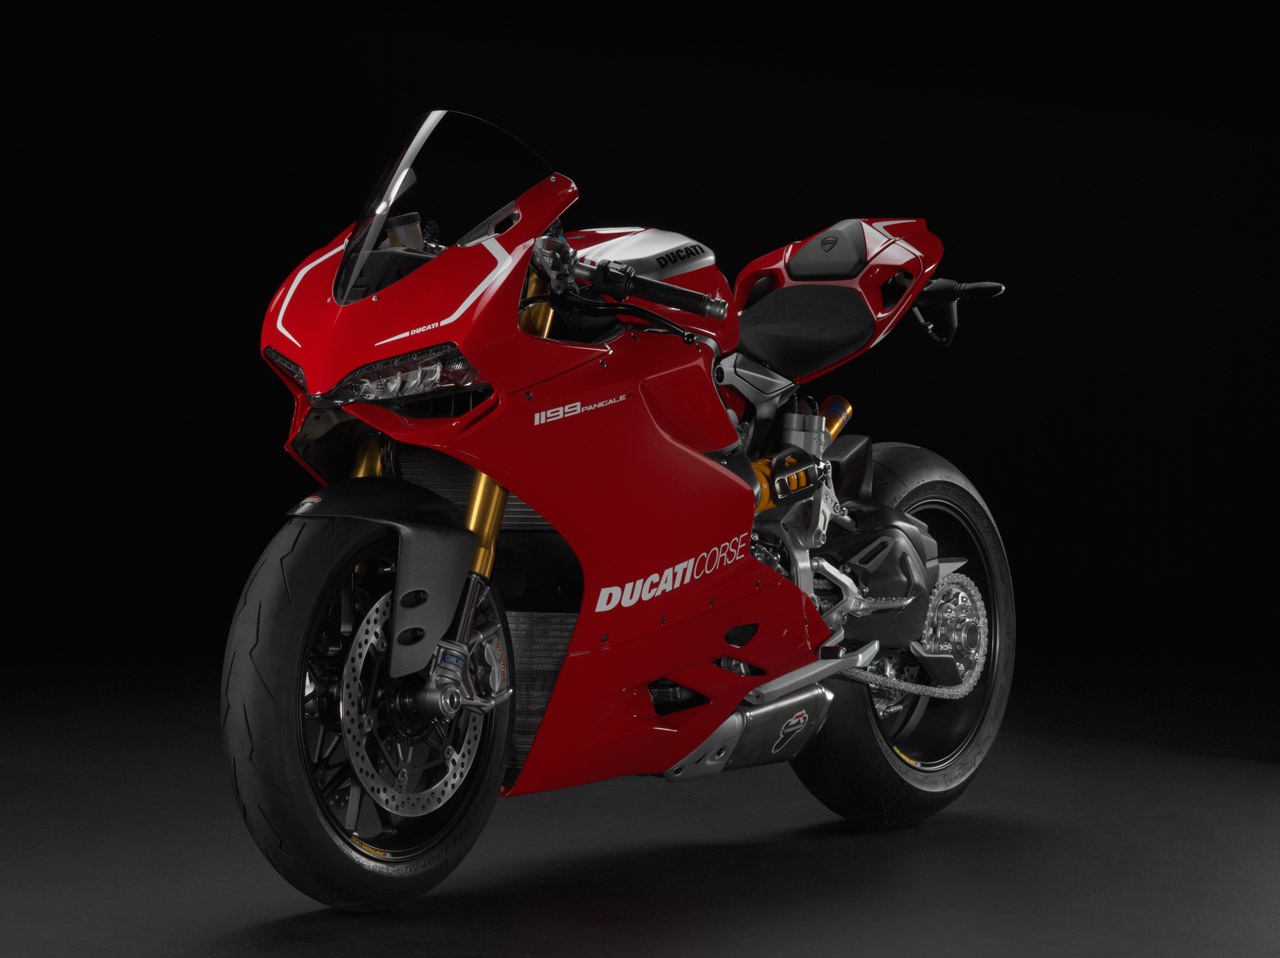 2013 ducati 1199 panigale r photo gallery autoblog. Black Bedroom Furniture Sets. Home Design Ideas